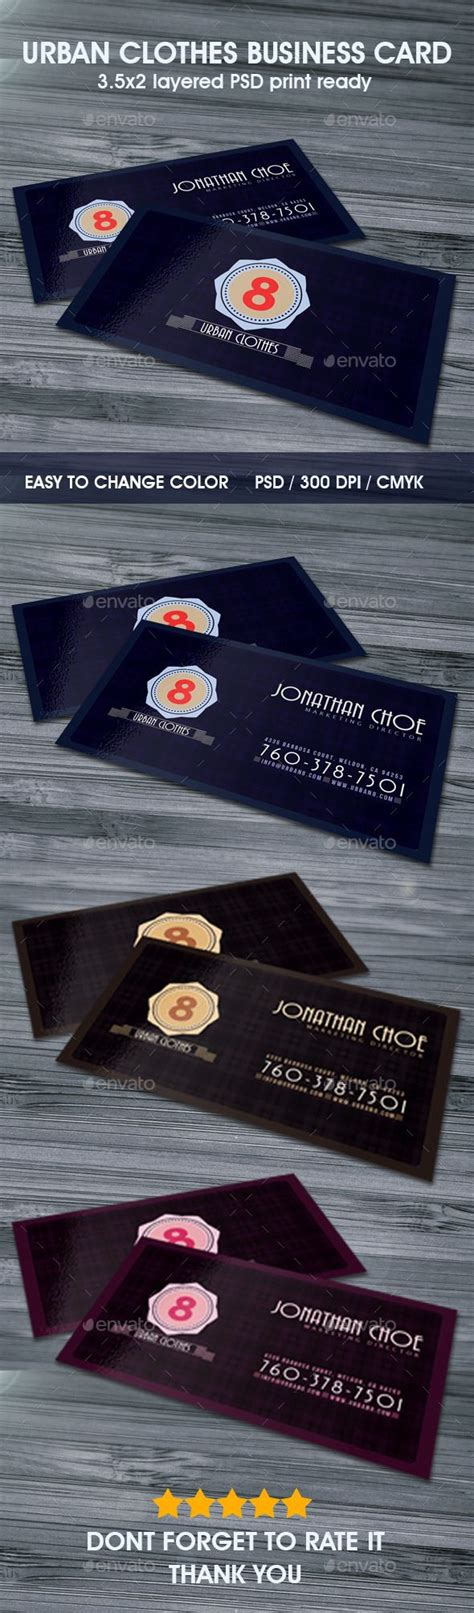 urban clothes business card urban outfits  business